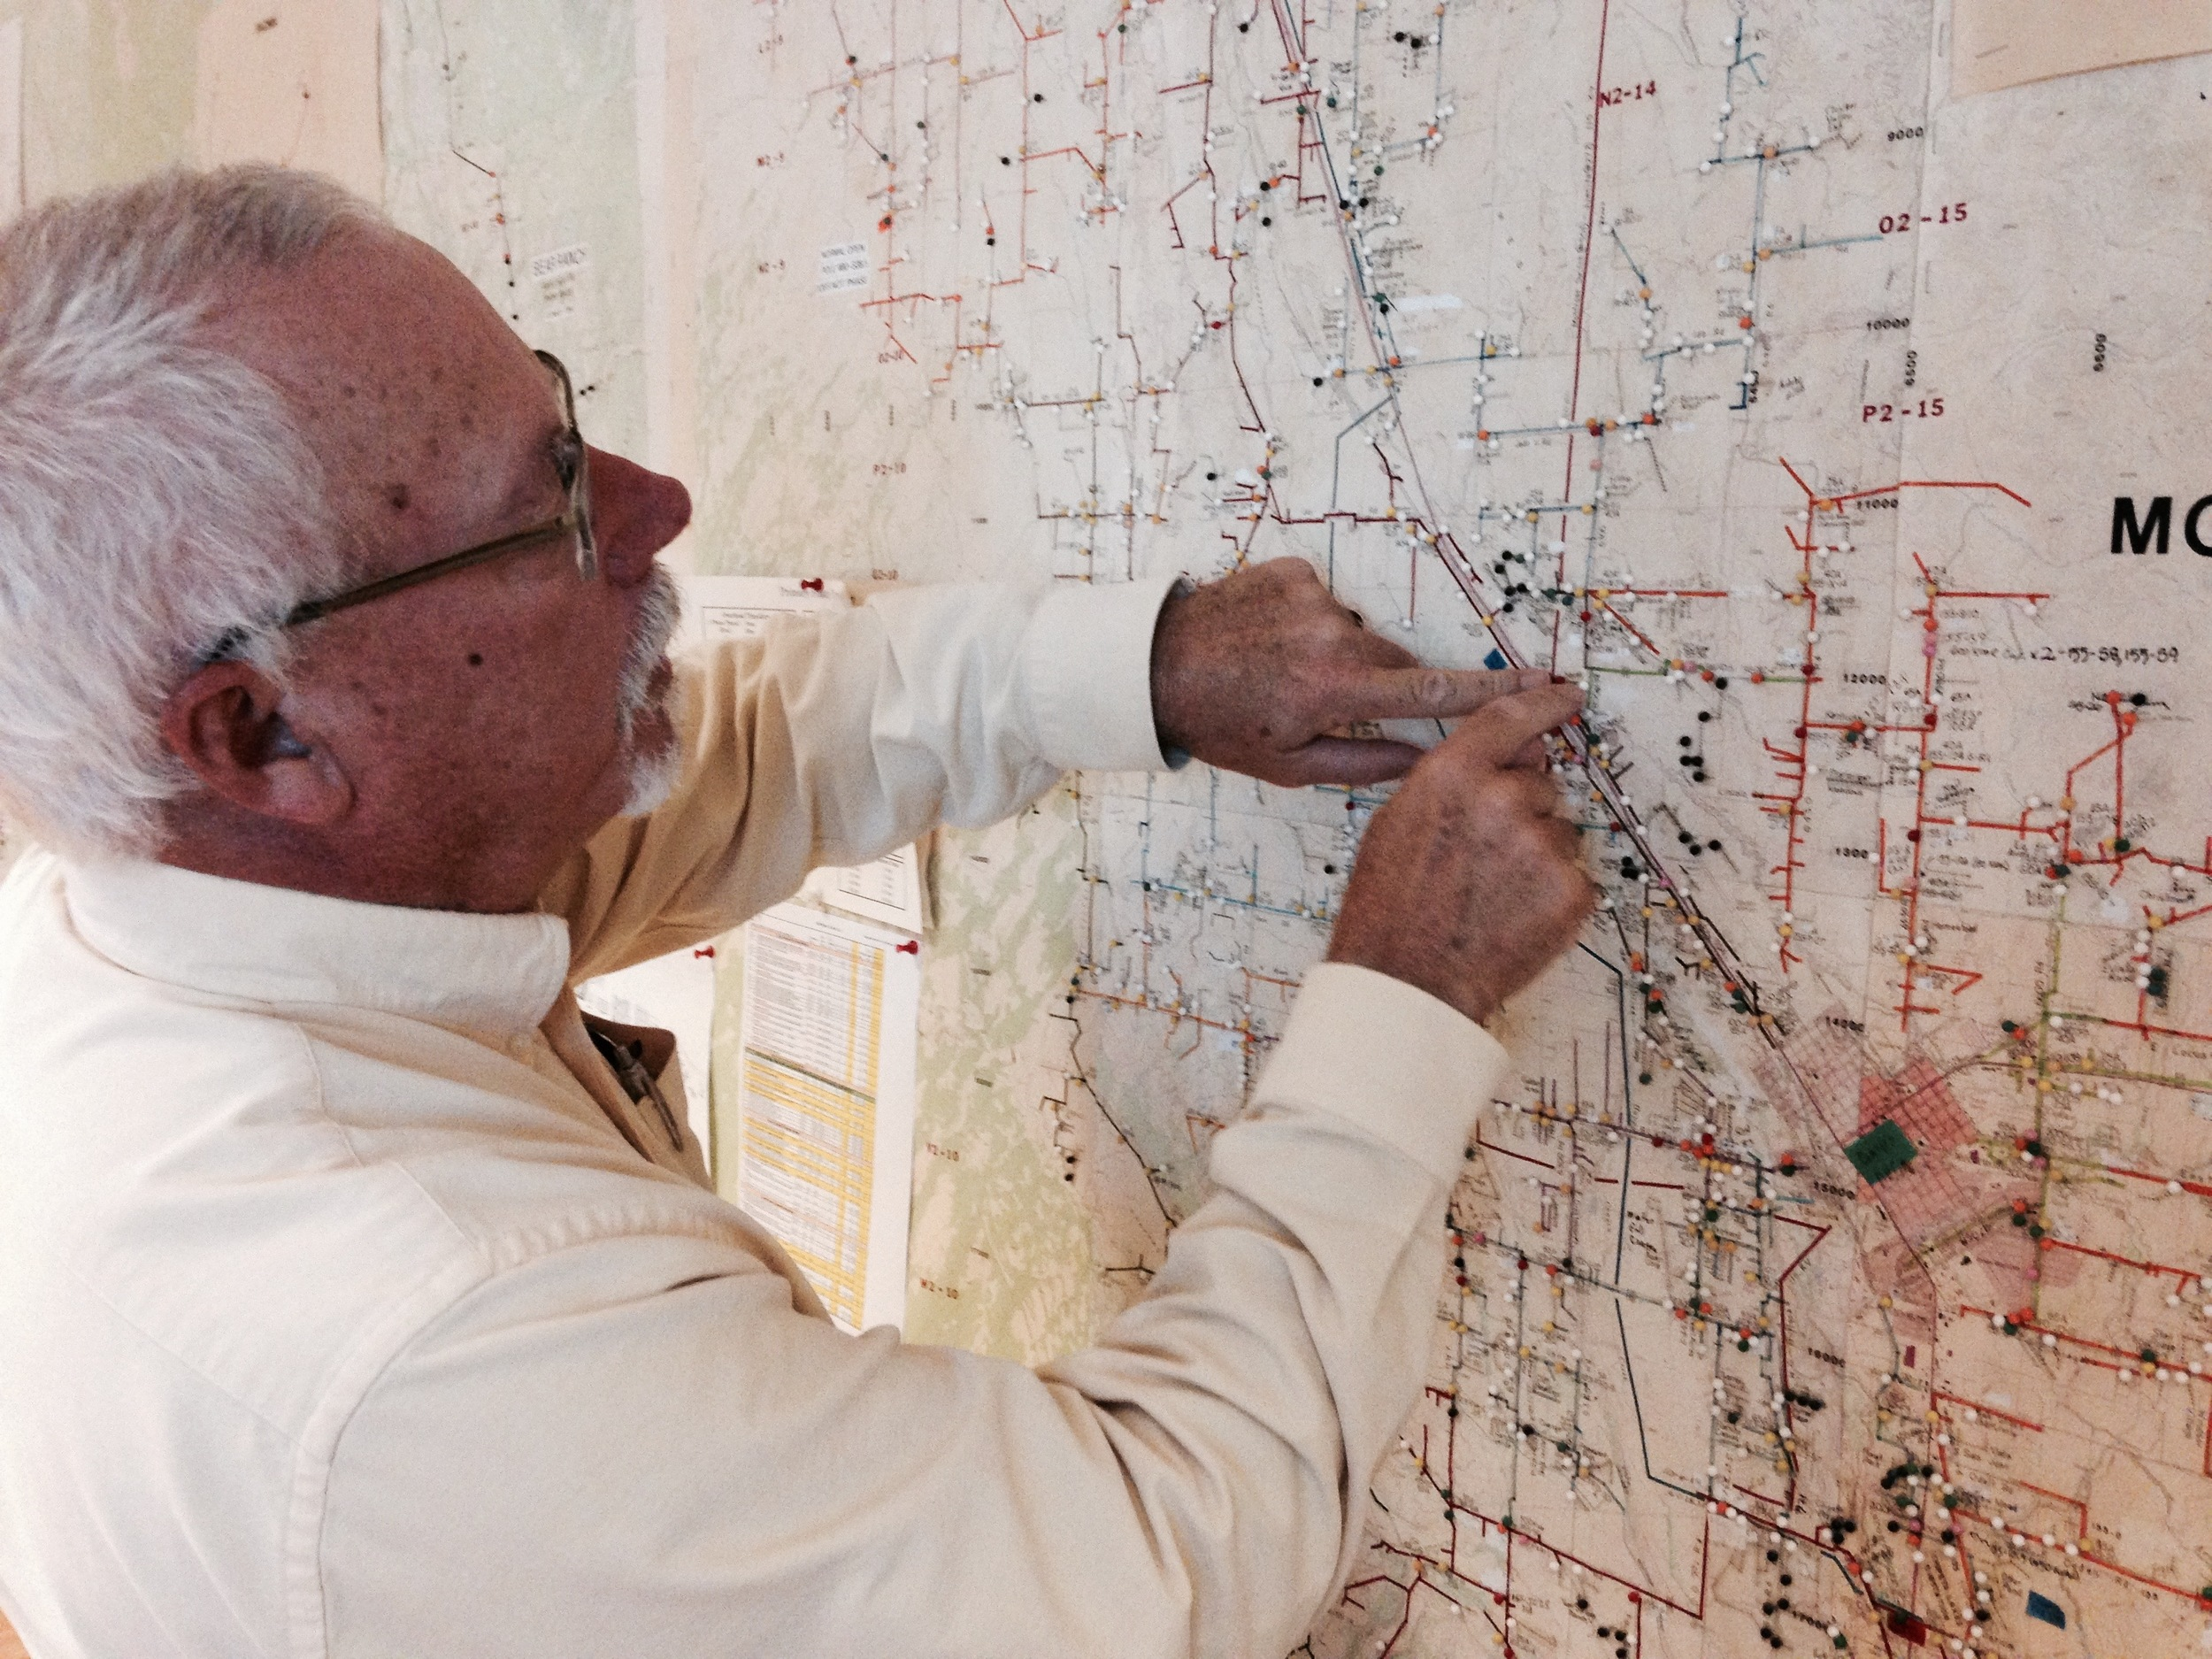 Steve Metheny, of the Delta-Montrose Electric Association, illustrates the utility's back-up to the back-up: a floor to ceiling paper map of their service area and infrastructure. Jordan Wirfs-Brock.